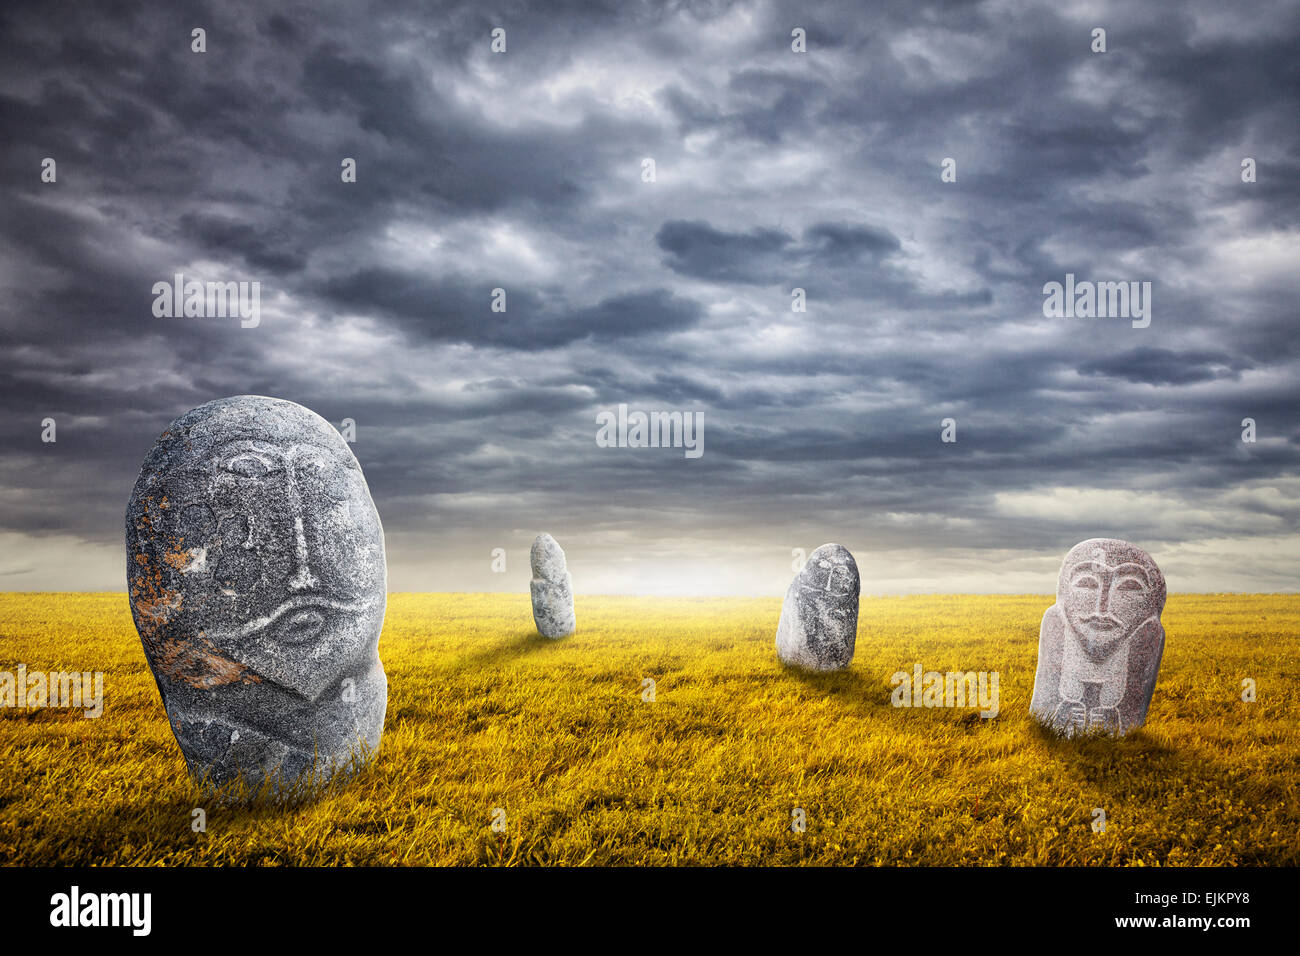 Ancient balbal statues on the field at overcast sky in central Asia - Stock Image